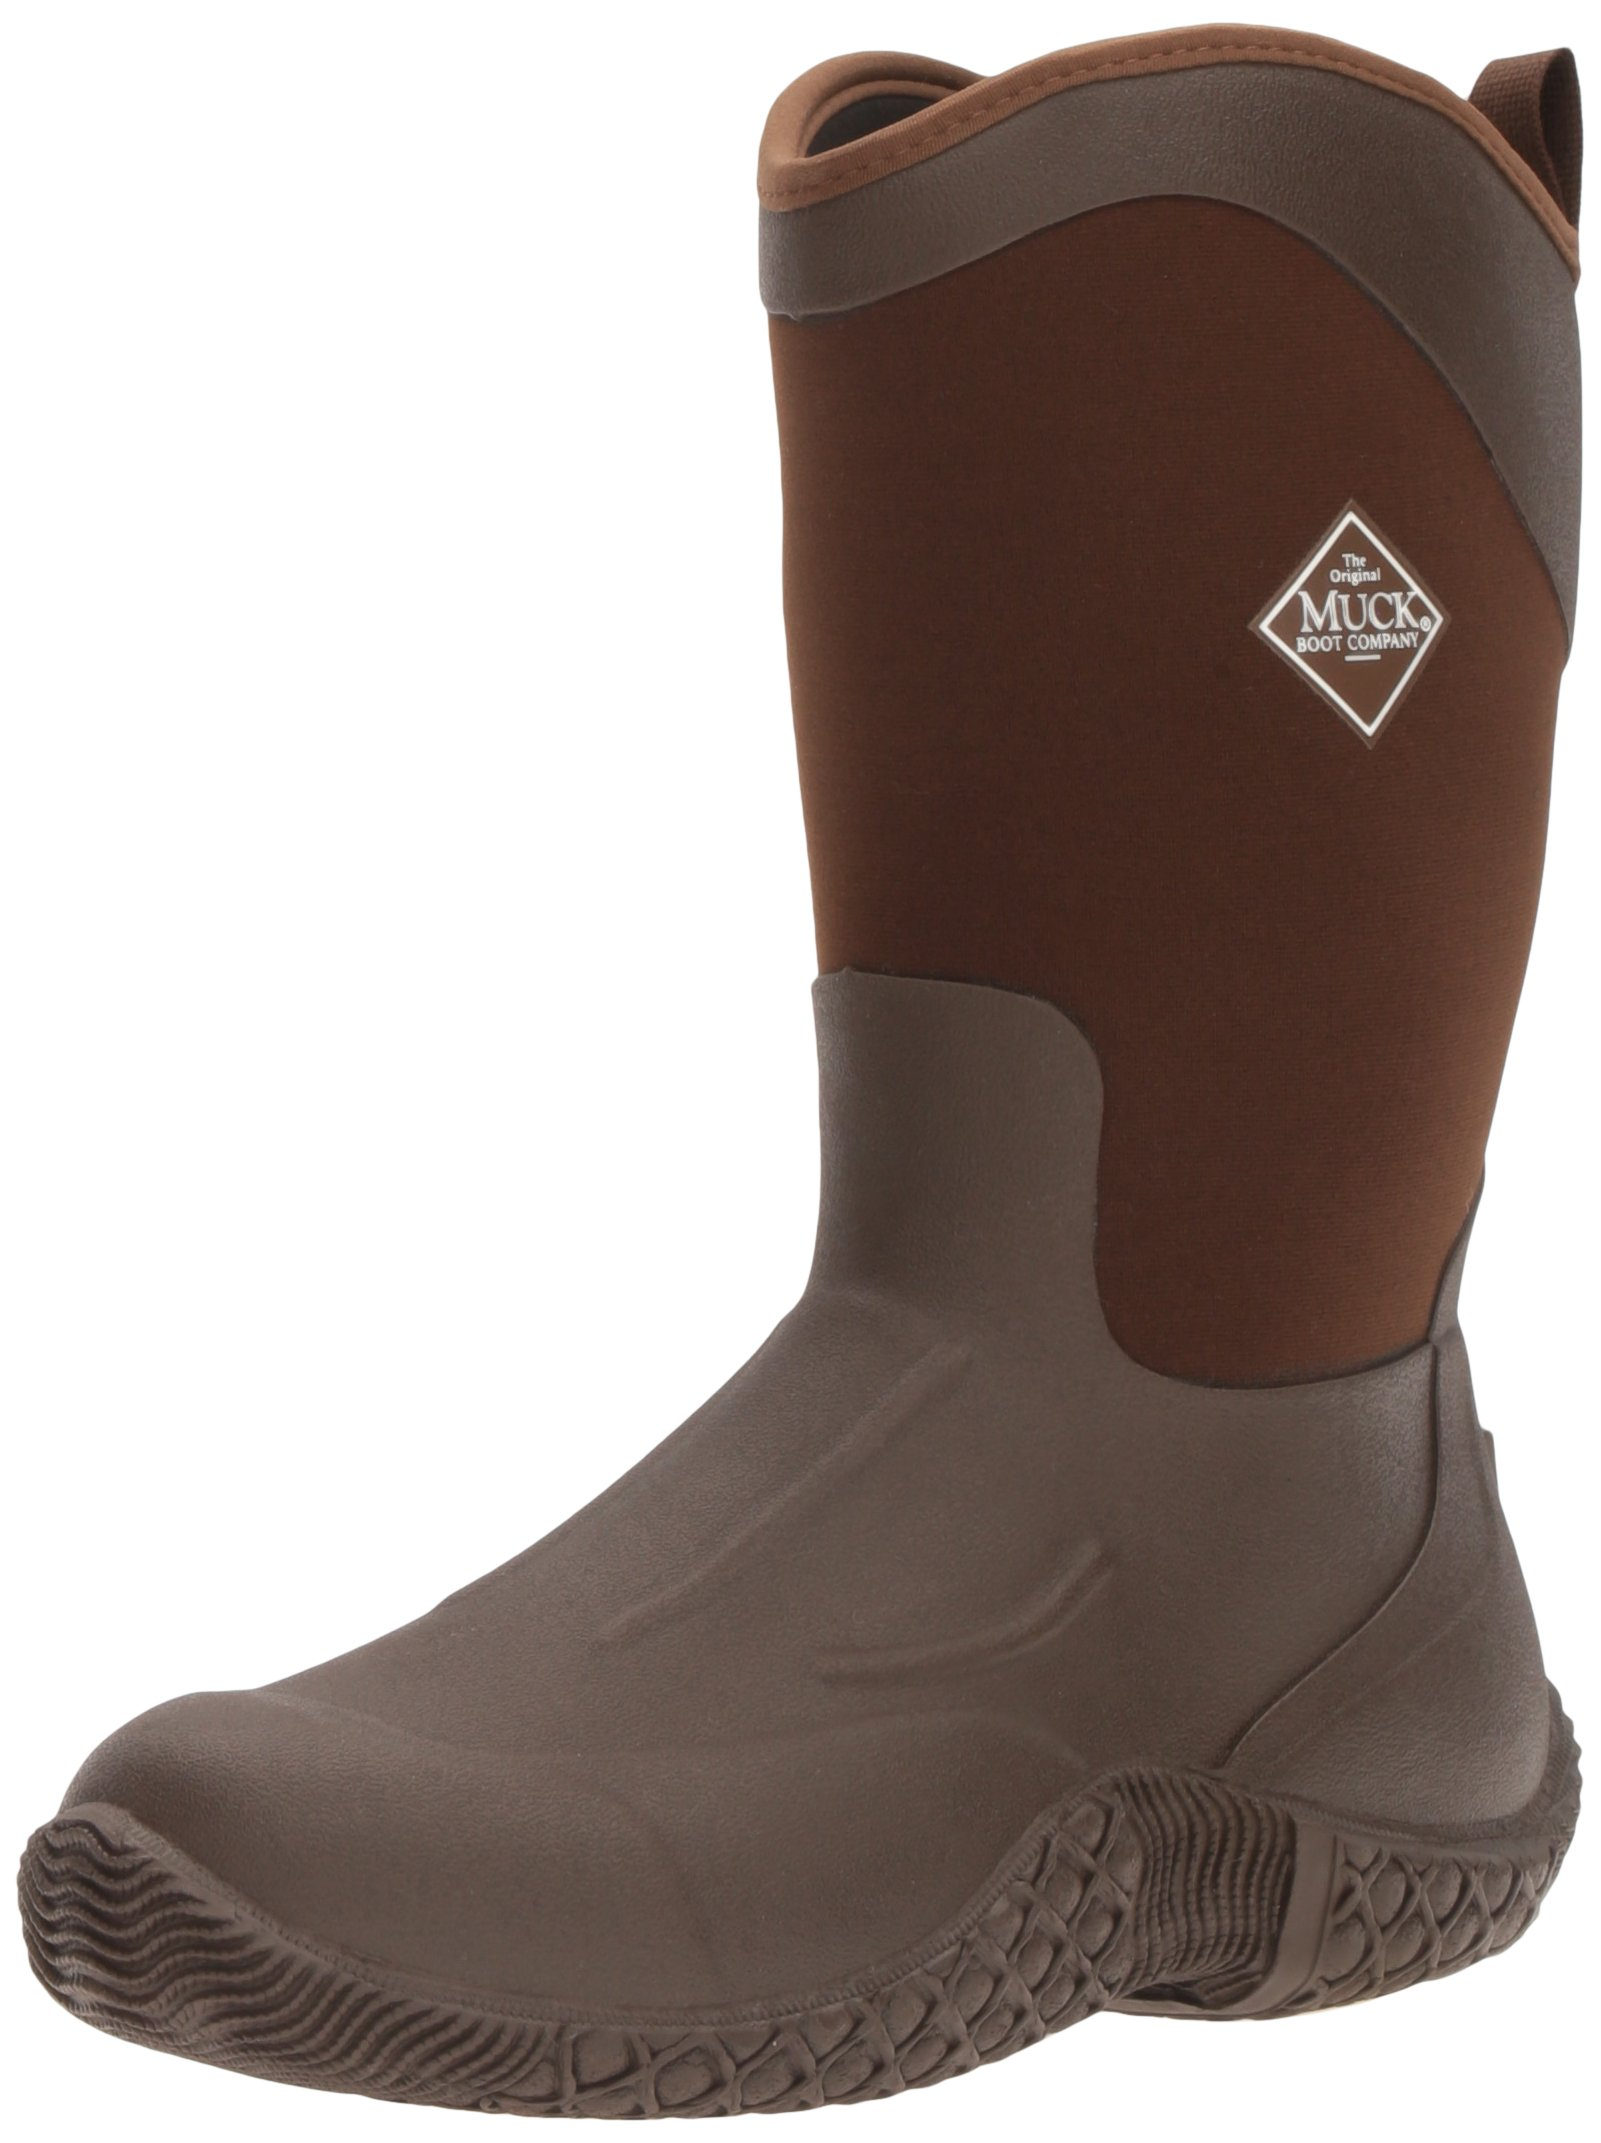 Muck Boot Women's Tack II Mid Snow Boot, Brown, 8 M US by Muck Boot